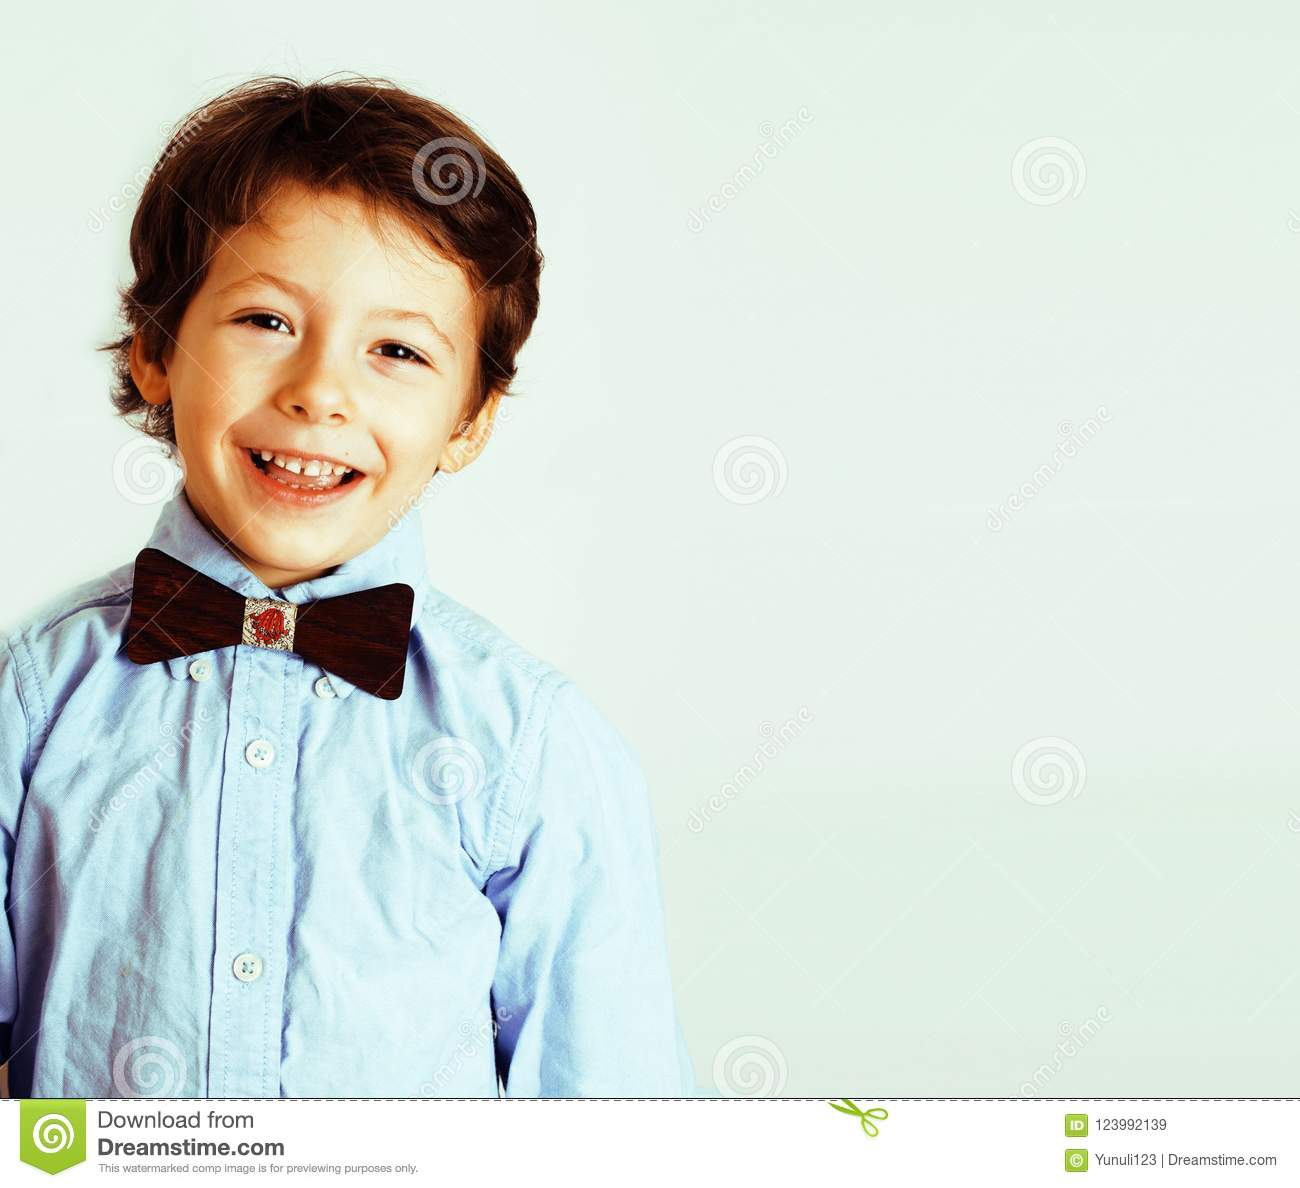 little cute boy on white background gesture tumbs up smiling clo